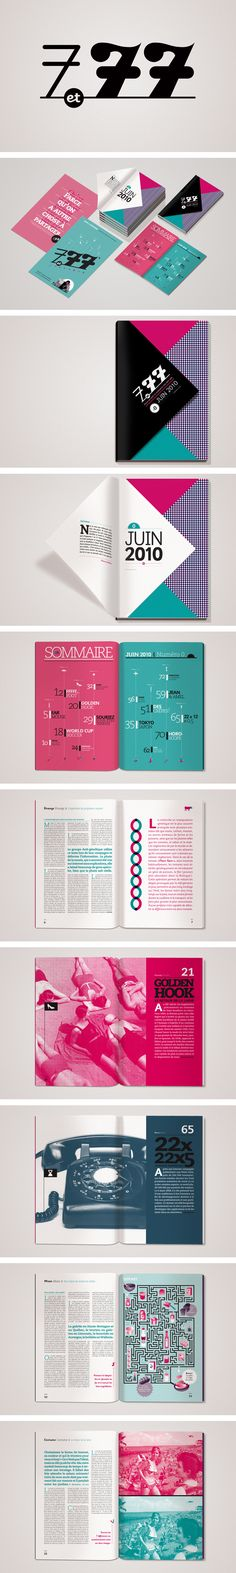 Great layout colorful brochure or magazine outline Layout Design, Web Design, Graphic Design Layouts, Graphic Design Print, Print Layout, Graphic Design Typography, Graphic Design Illustration, Brochure Design, Graphic Design Inspiration